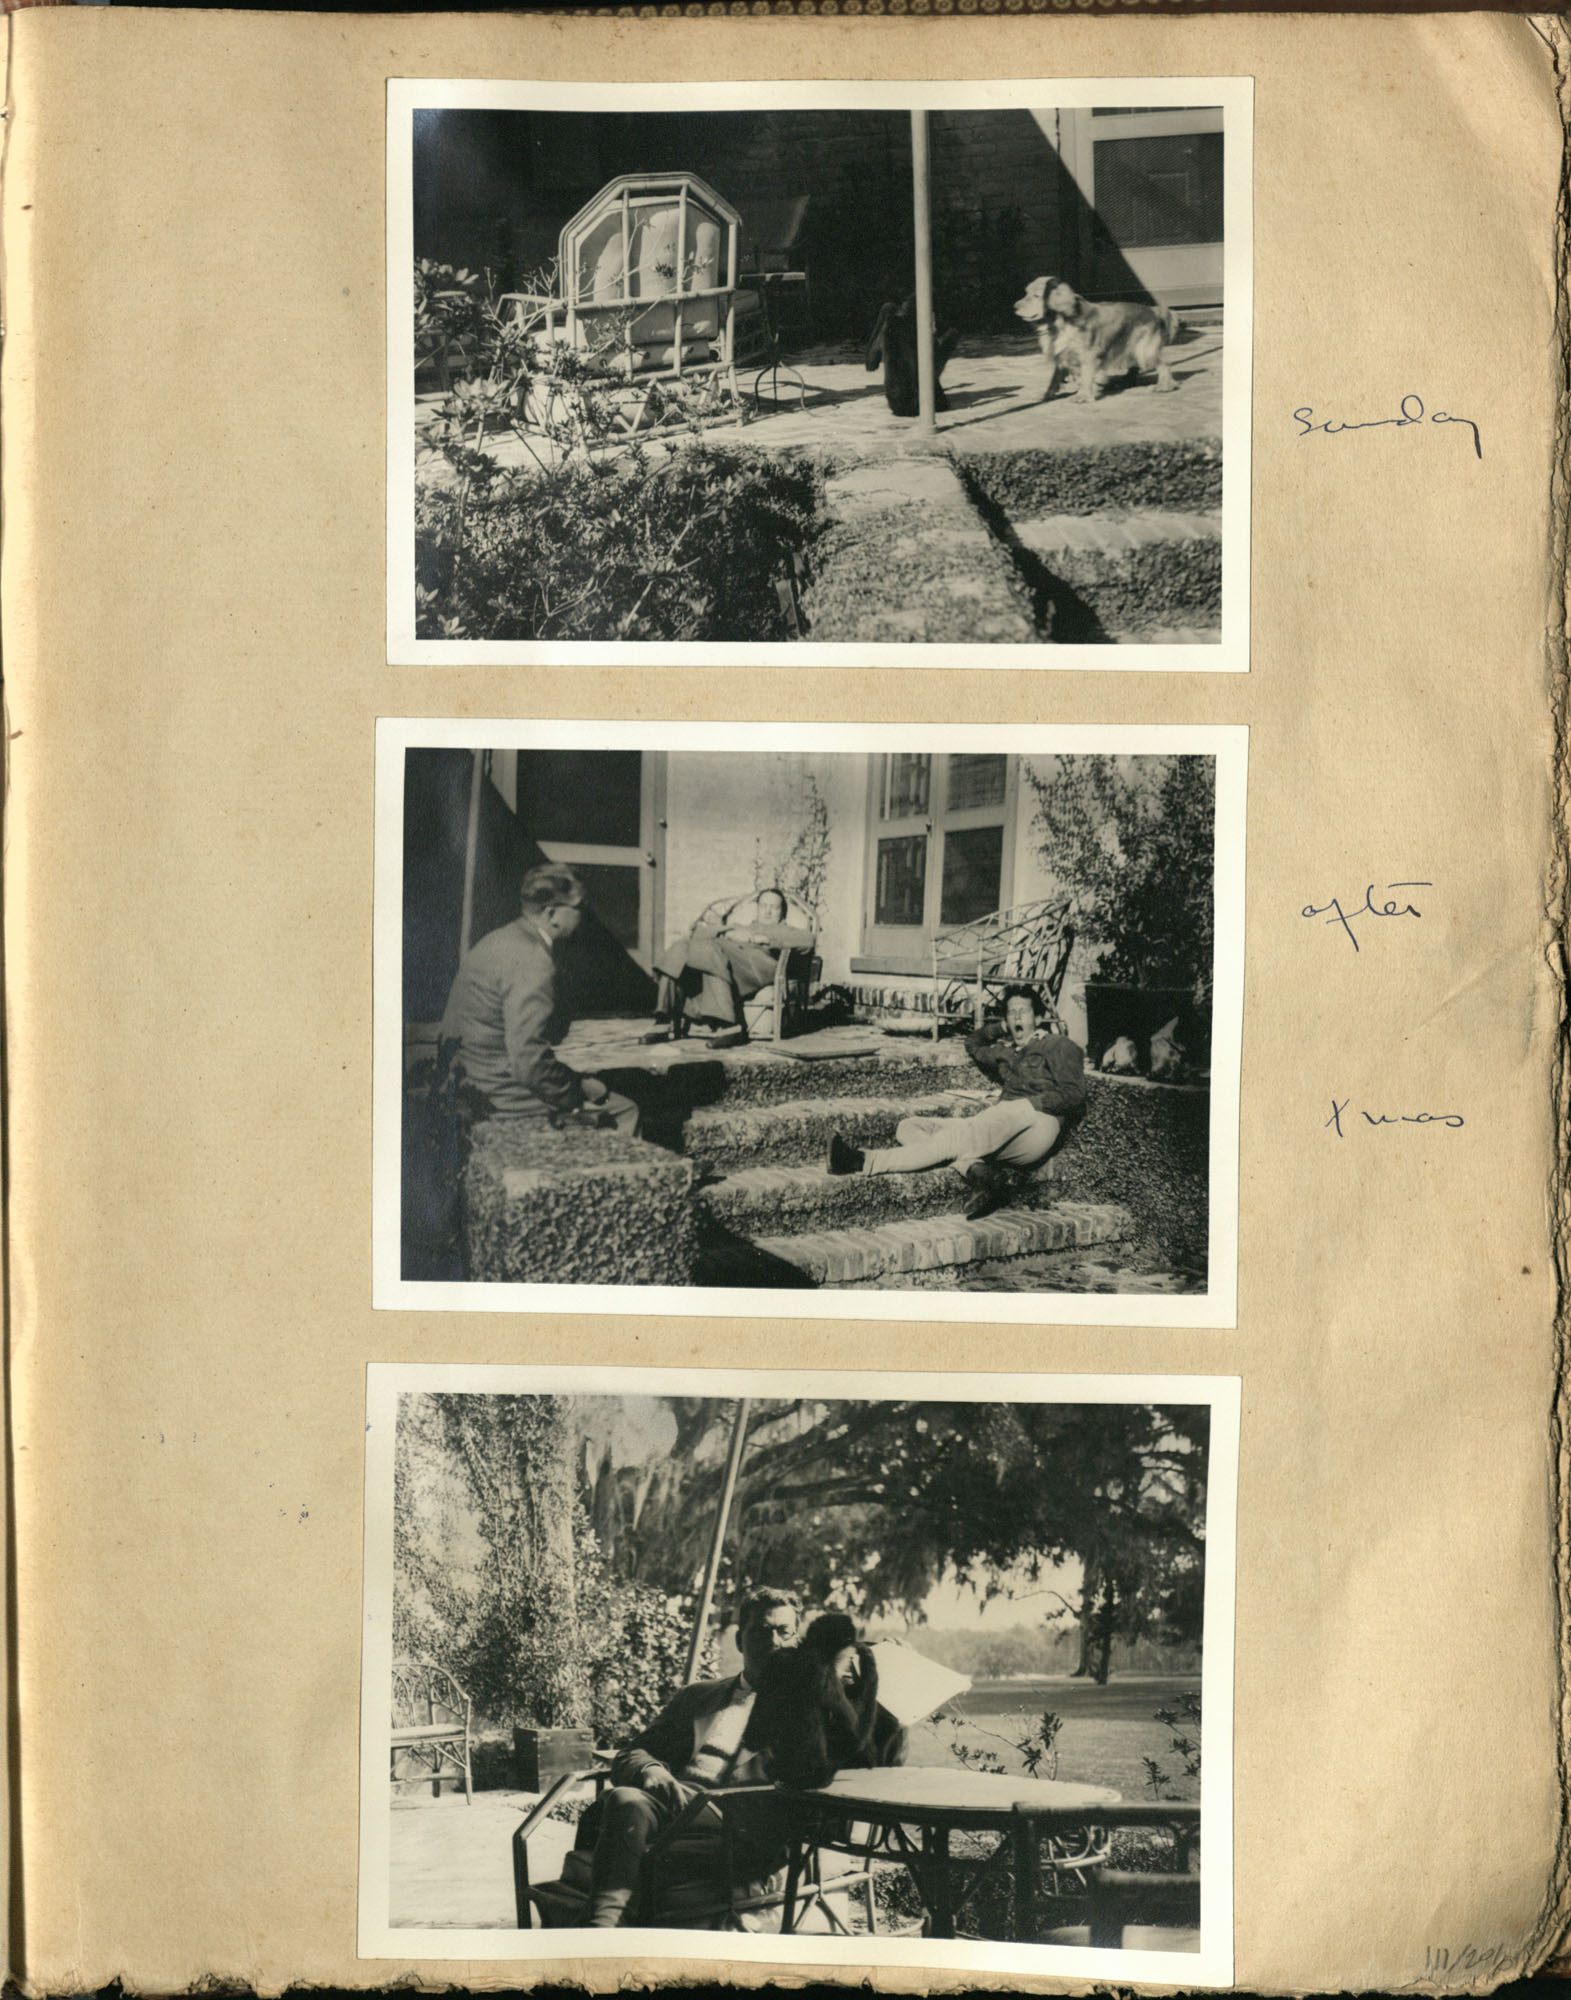 Early Medway and travels album, 1929-1937, page 111